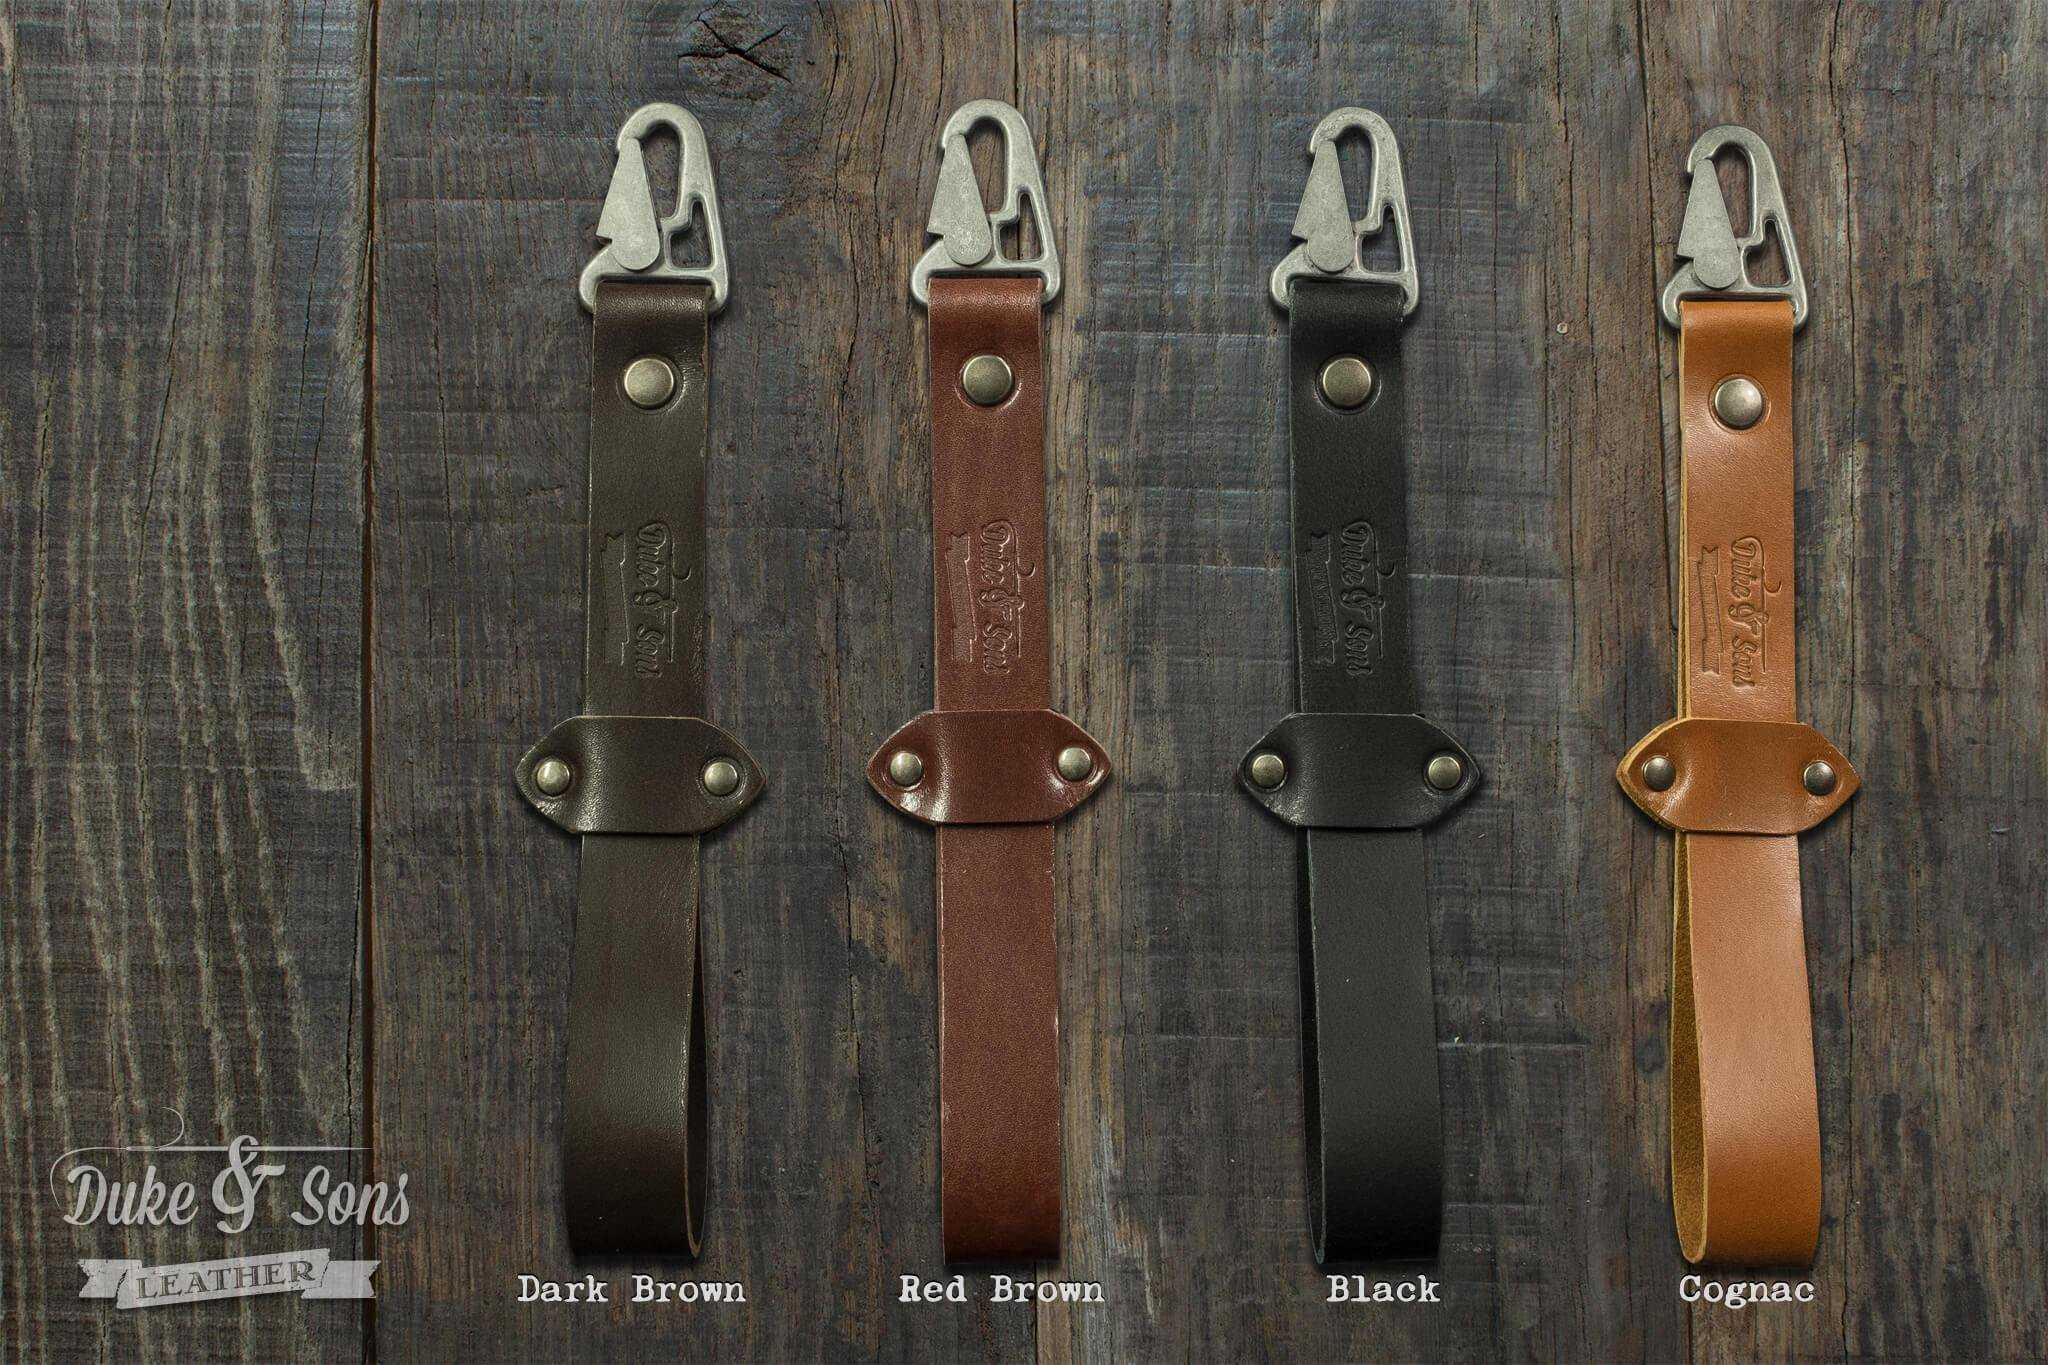 Glove strap, available in these 4 colors